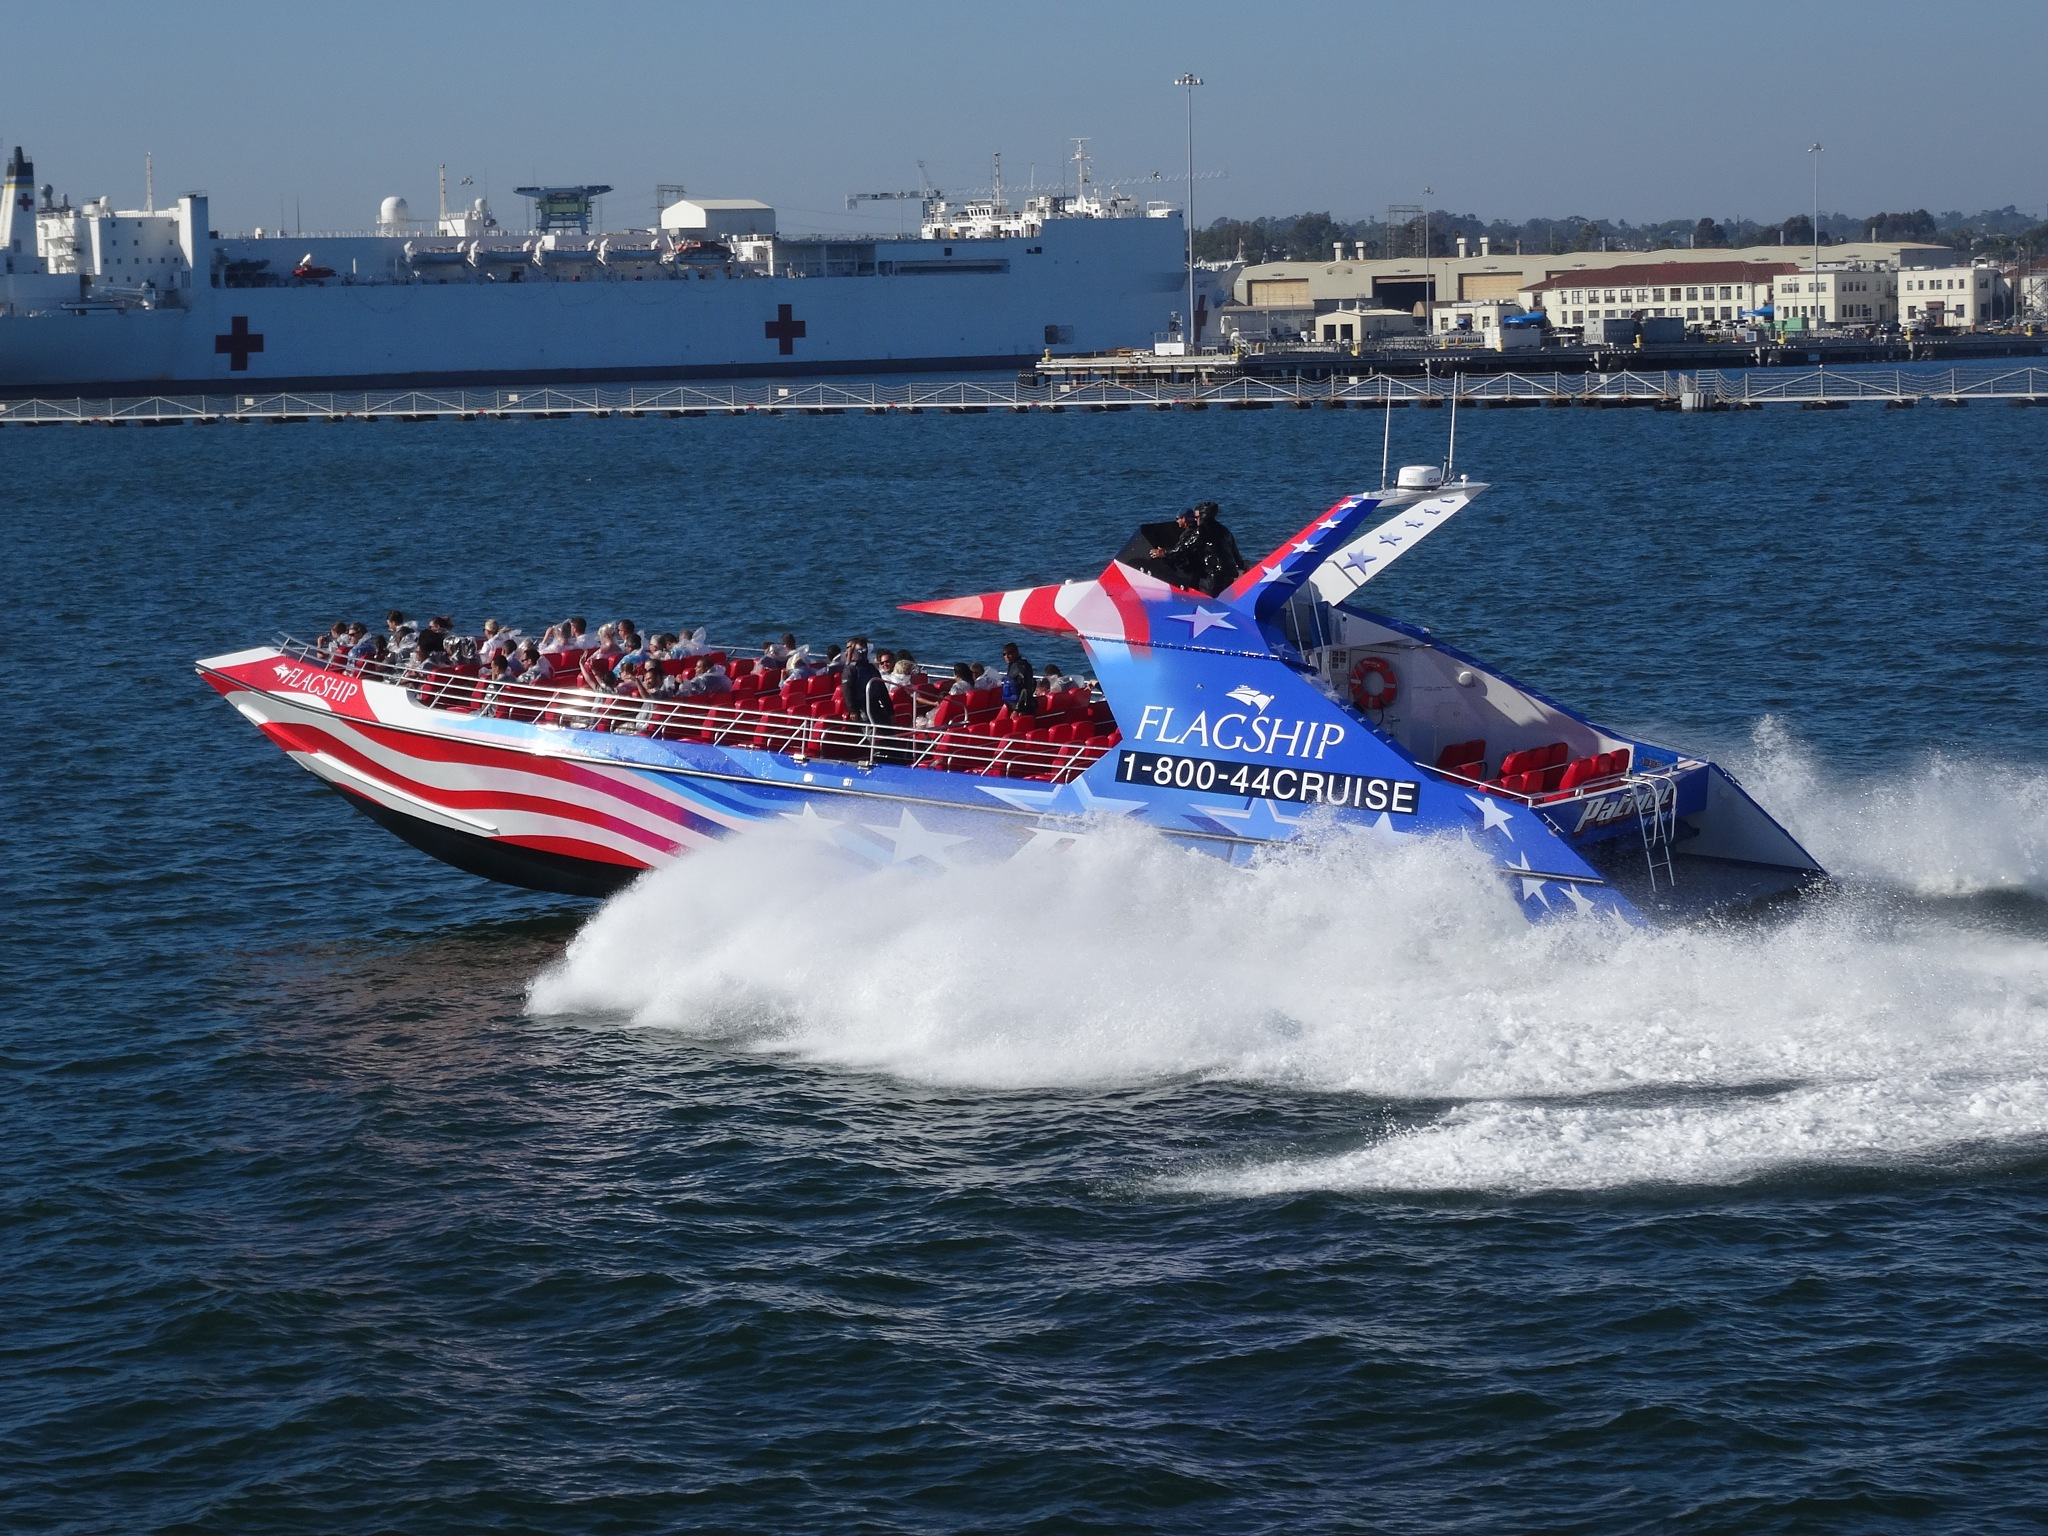 Flagship  Cruise - Patriot Jet Boat by Sen5